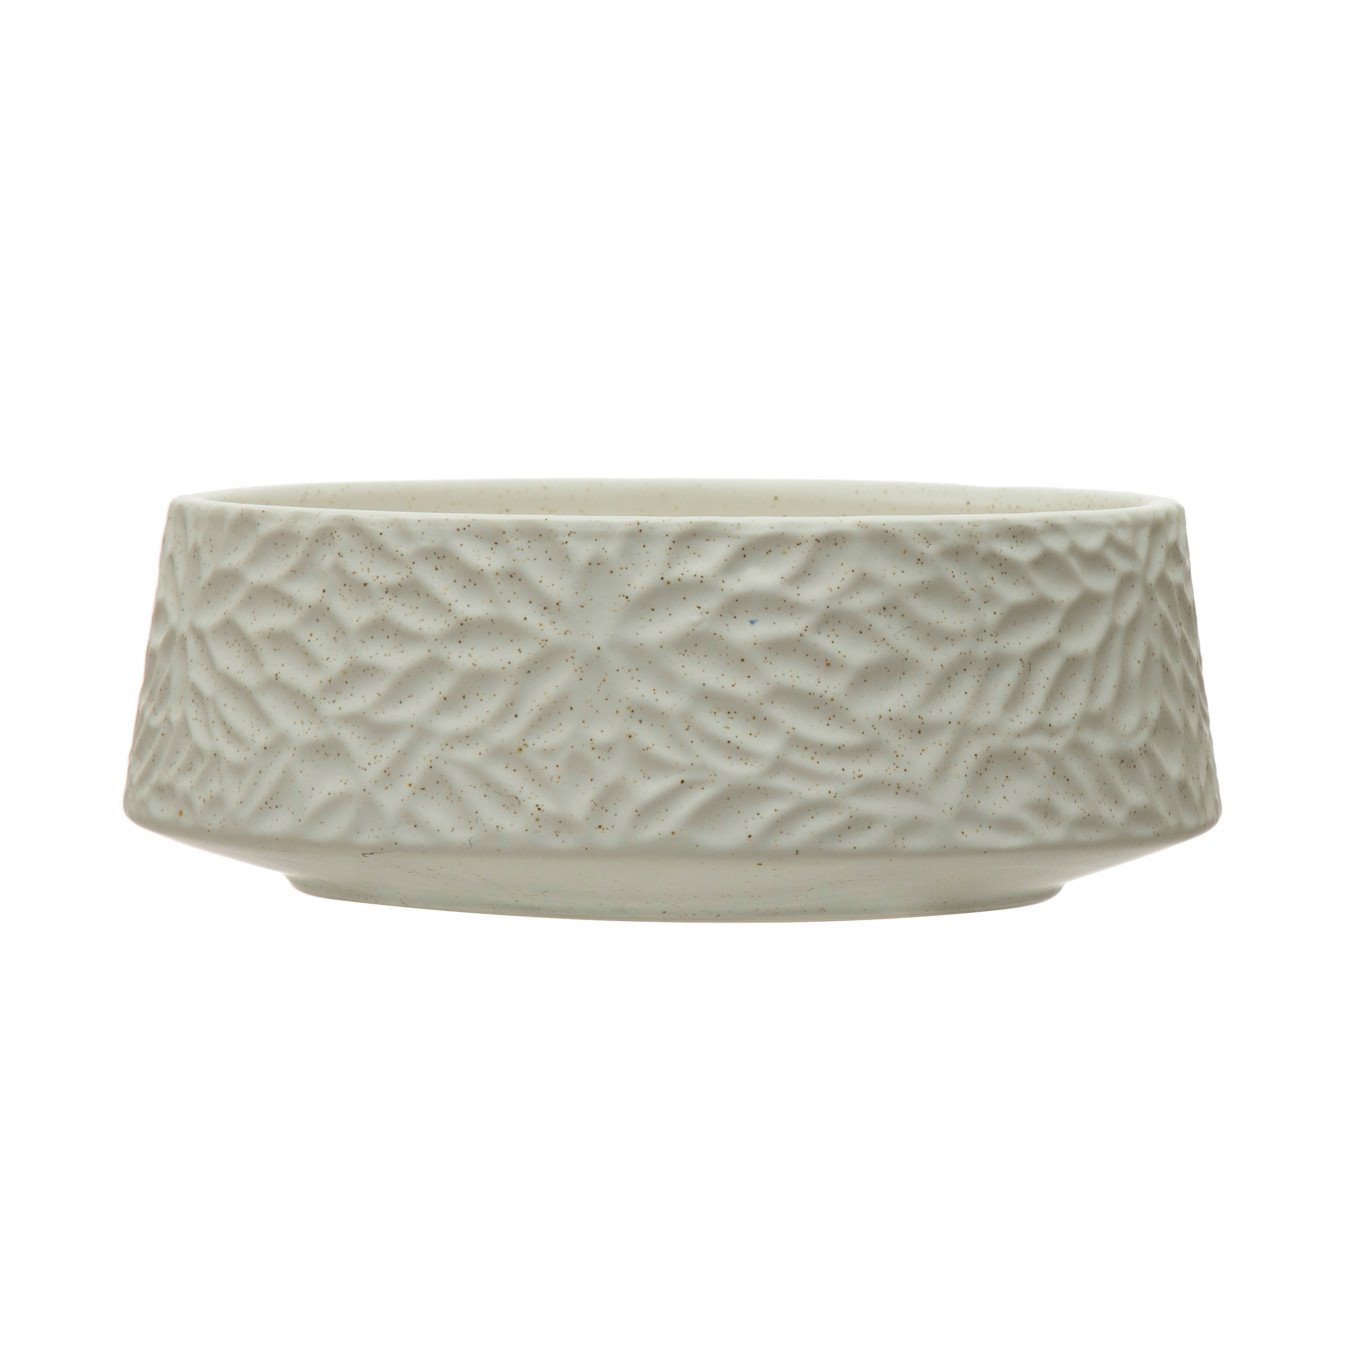 Stoneware Planter Bowl with Embossed Floral Design, Speckled Matte White